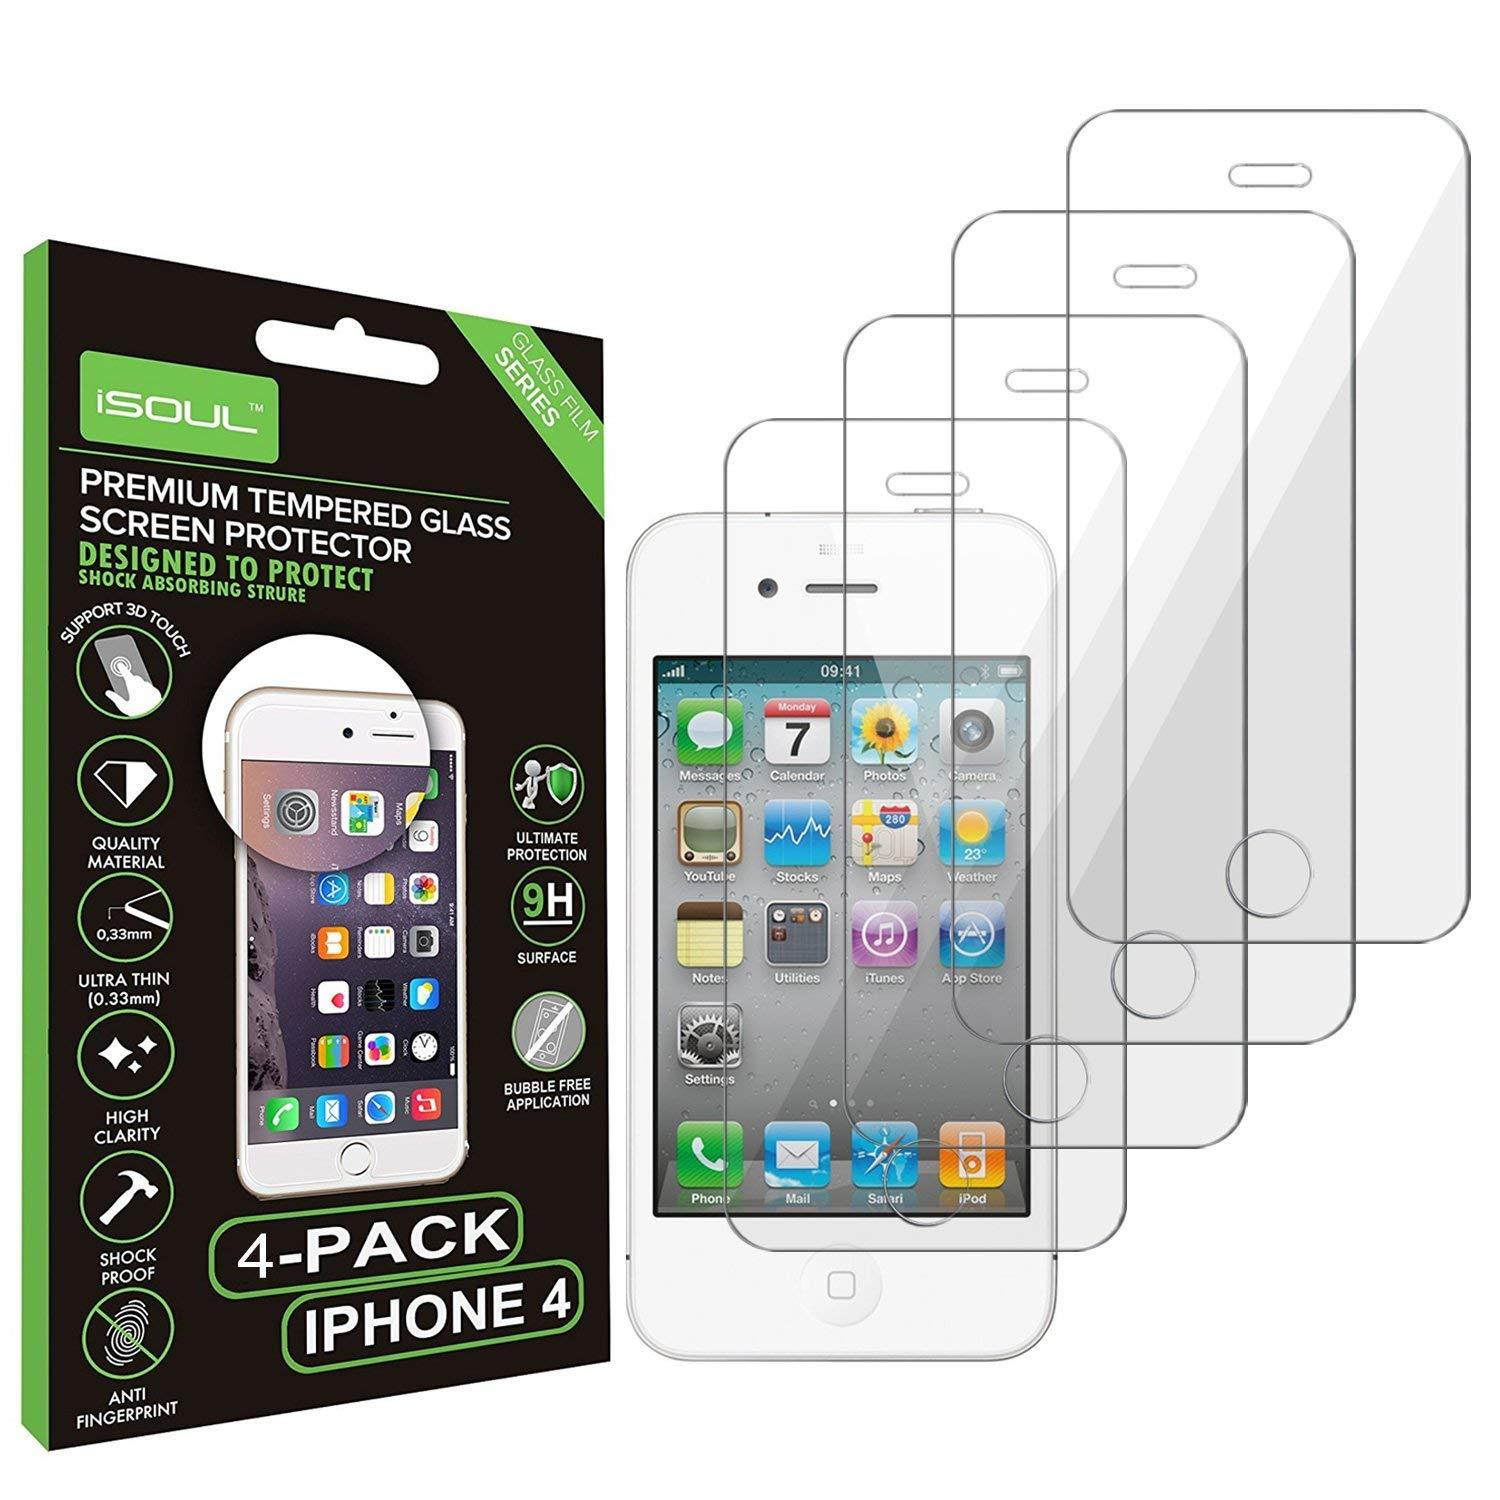 iSOUL Premium Tempered Glass iPhone 4 4S Screen Protector 9H Hard Ultra  Slim 0.26mm b754865716